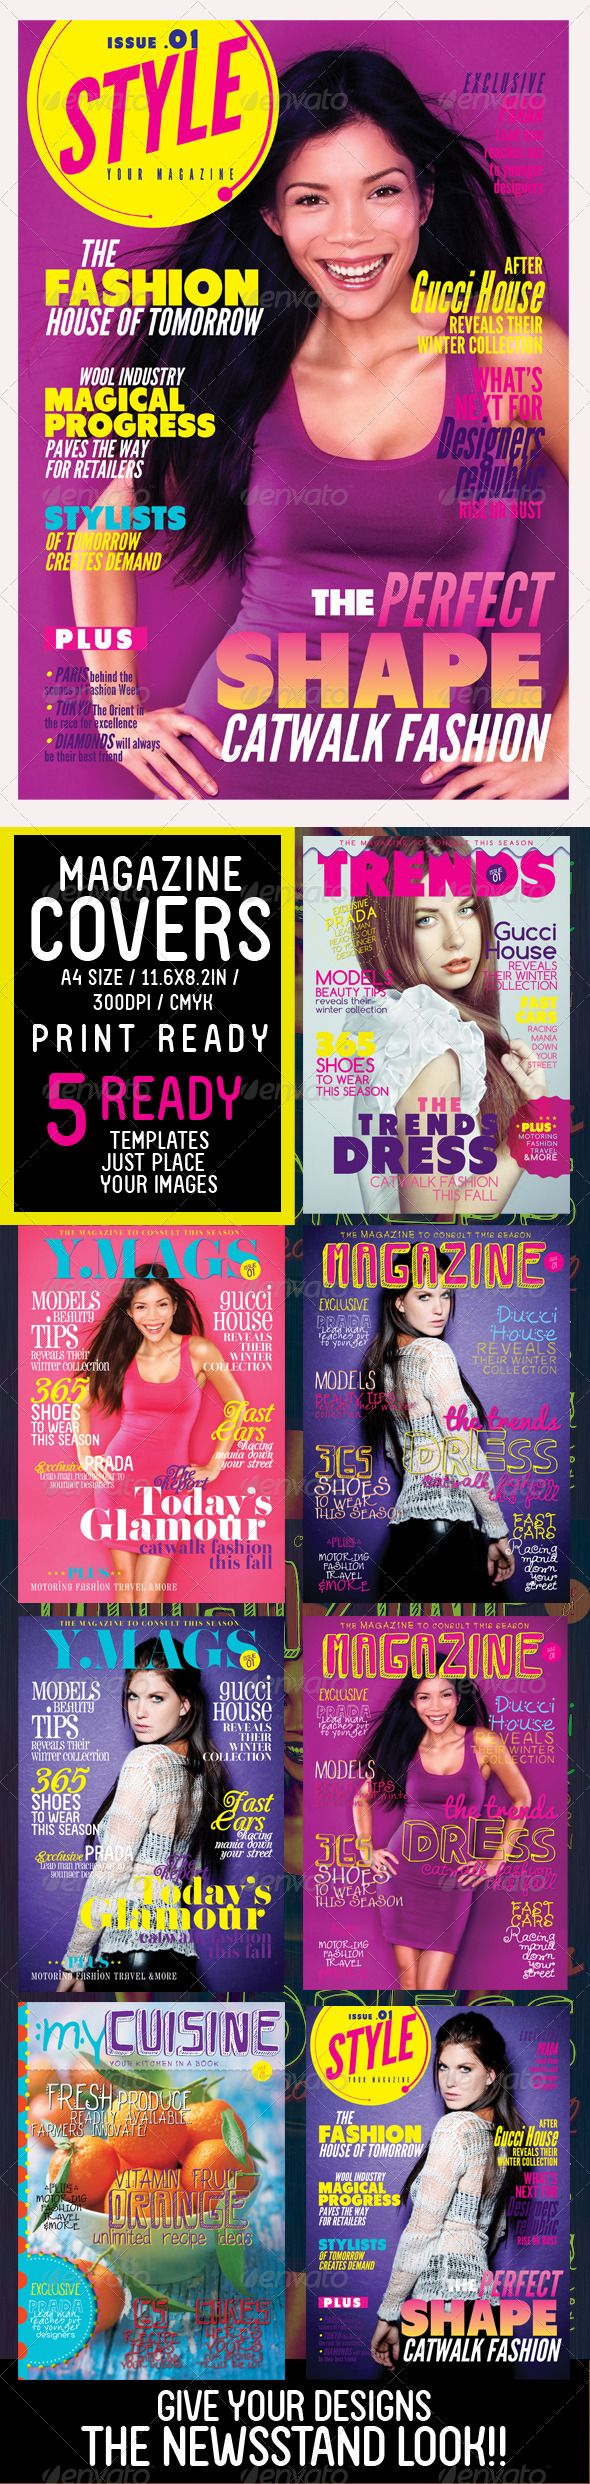 Magazine Covers Templates | Magazine cover template, Indesign ...